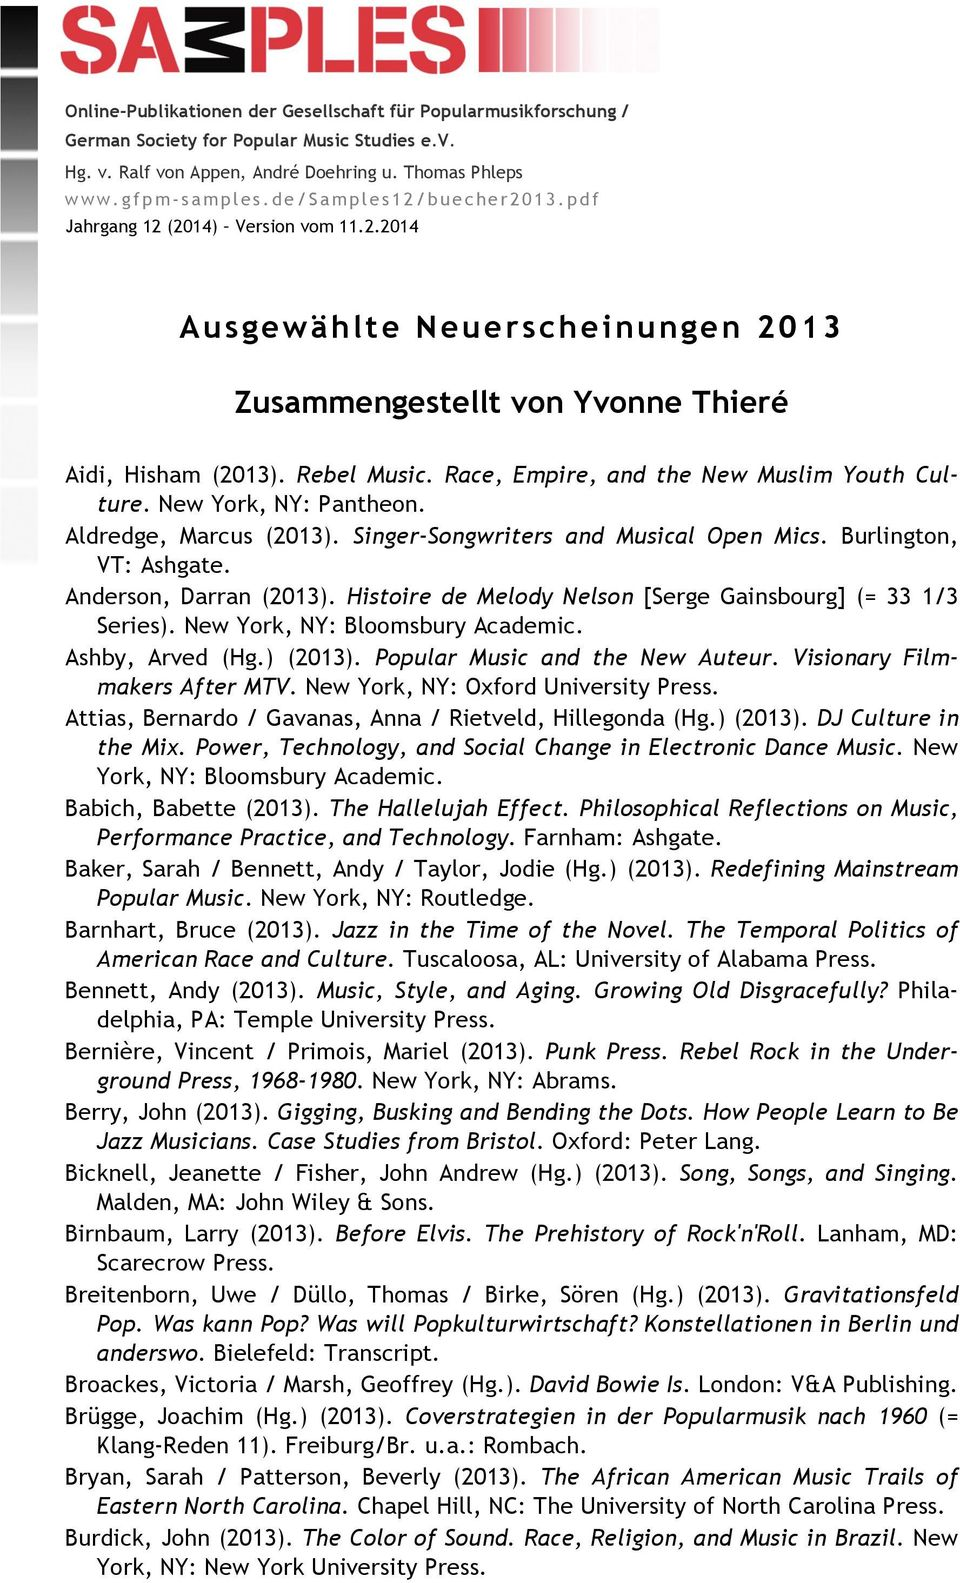 Race, Empire, and the New Muslim Youth Culture. New York, NY: Pantheon. Aldredge, Marcus (2013). Singer-Songwriters and Musical Open Mics. Burlington, VT: Ashgate. Anderson, Darran (2013).